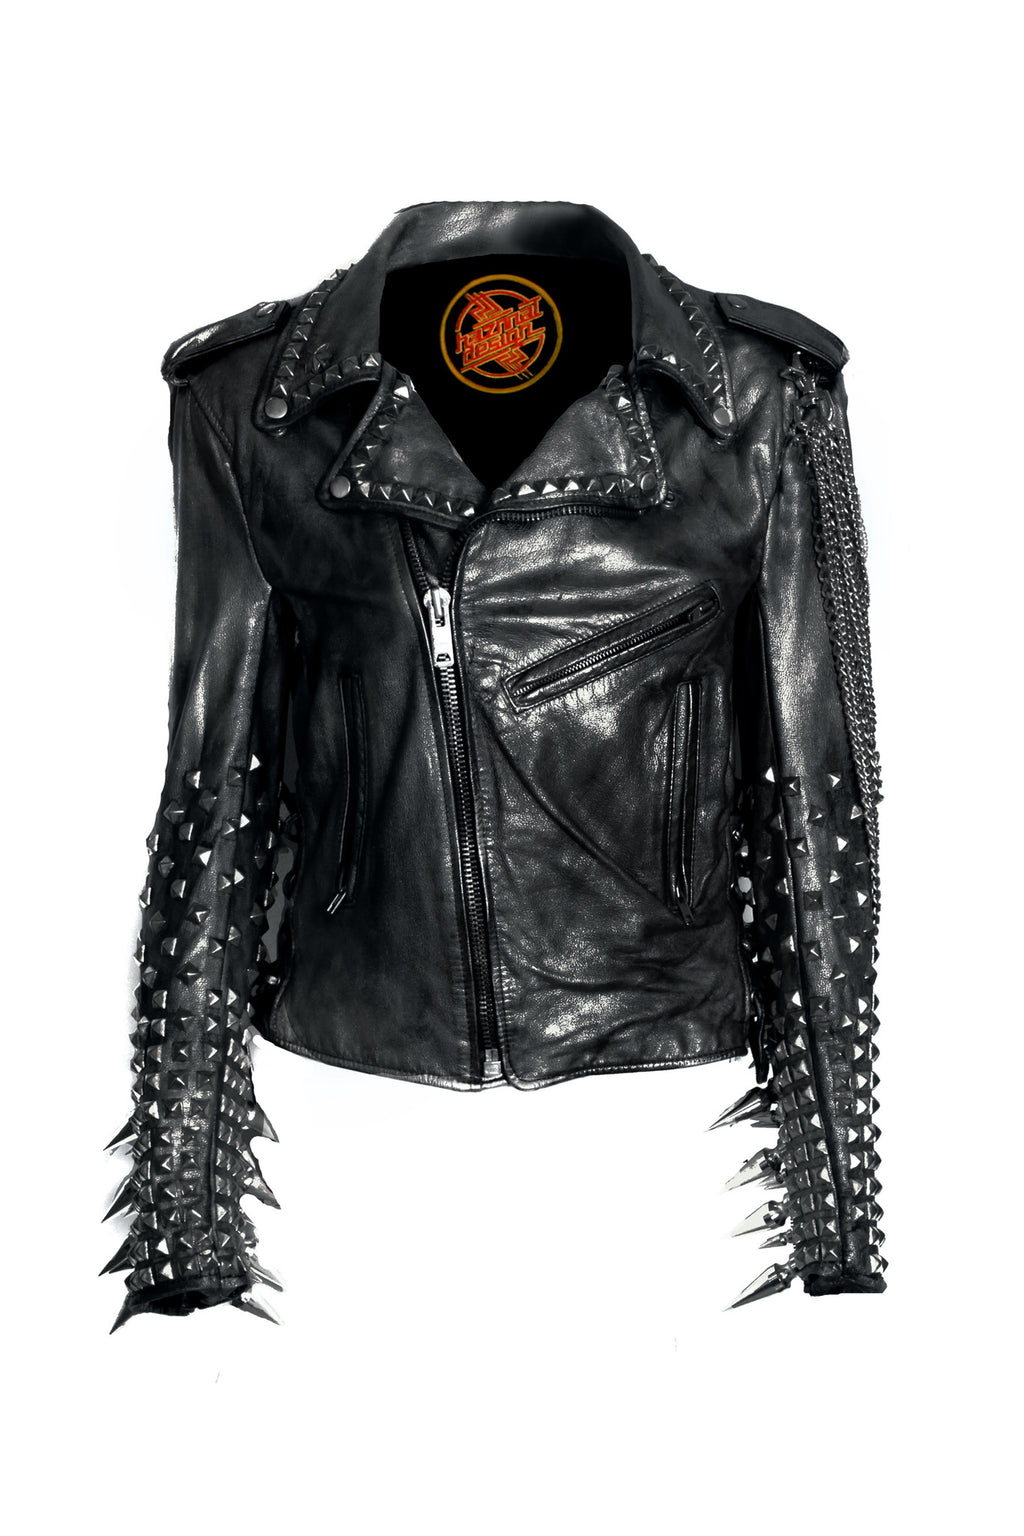 Spell of Destruction Spike Jacket